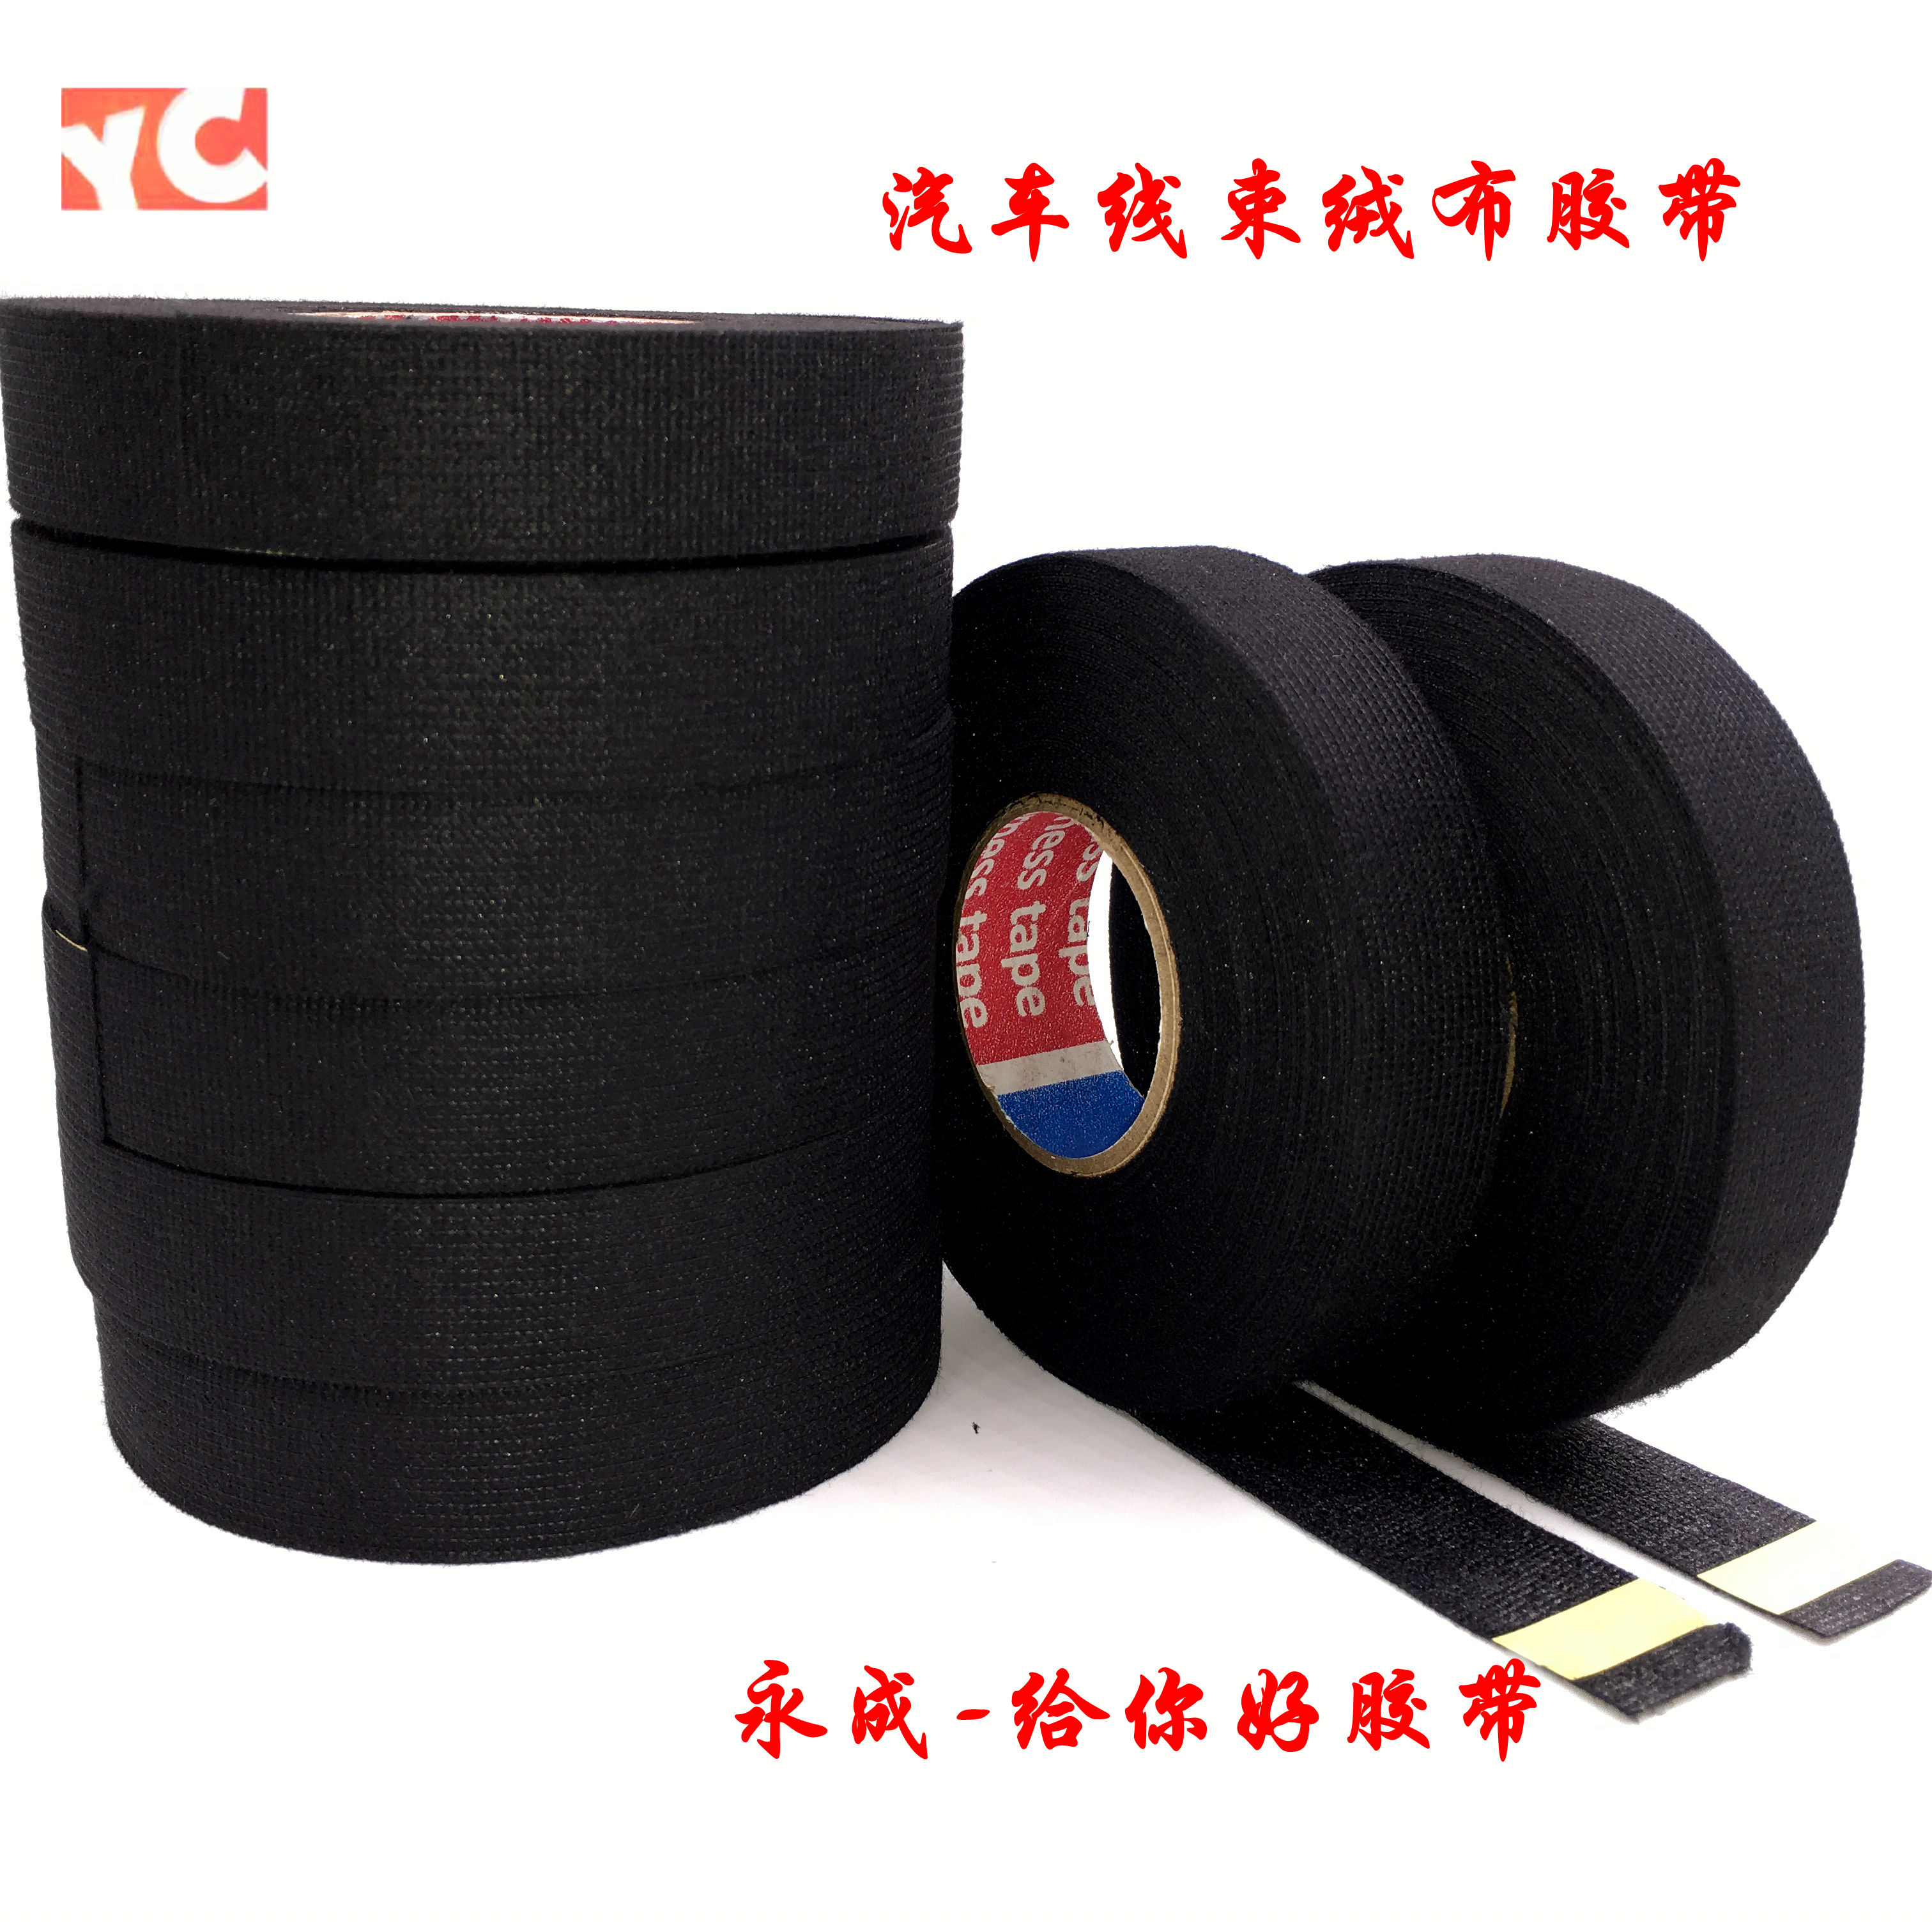 Automotive wiring harness flannel tape cloth tape high temperature flannel  tape Environmental Protection insulation tape YC ...